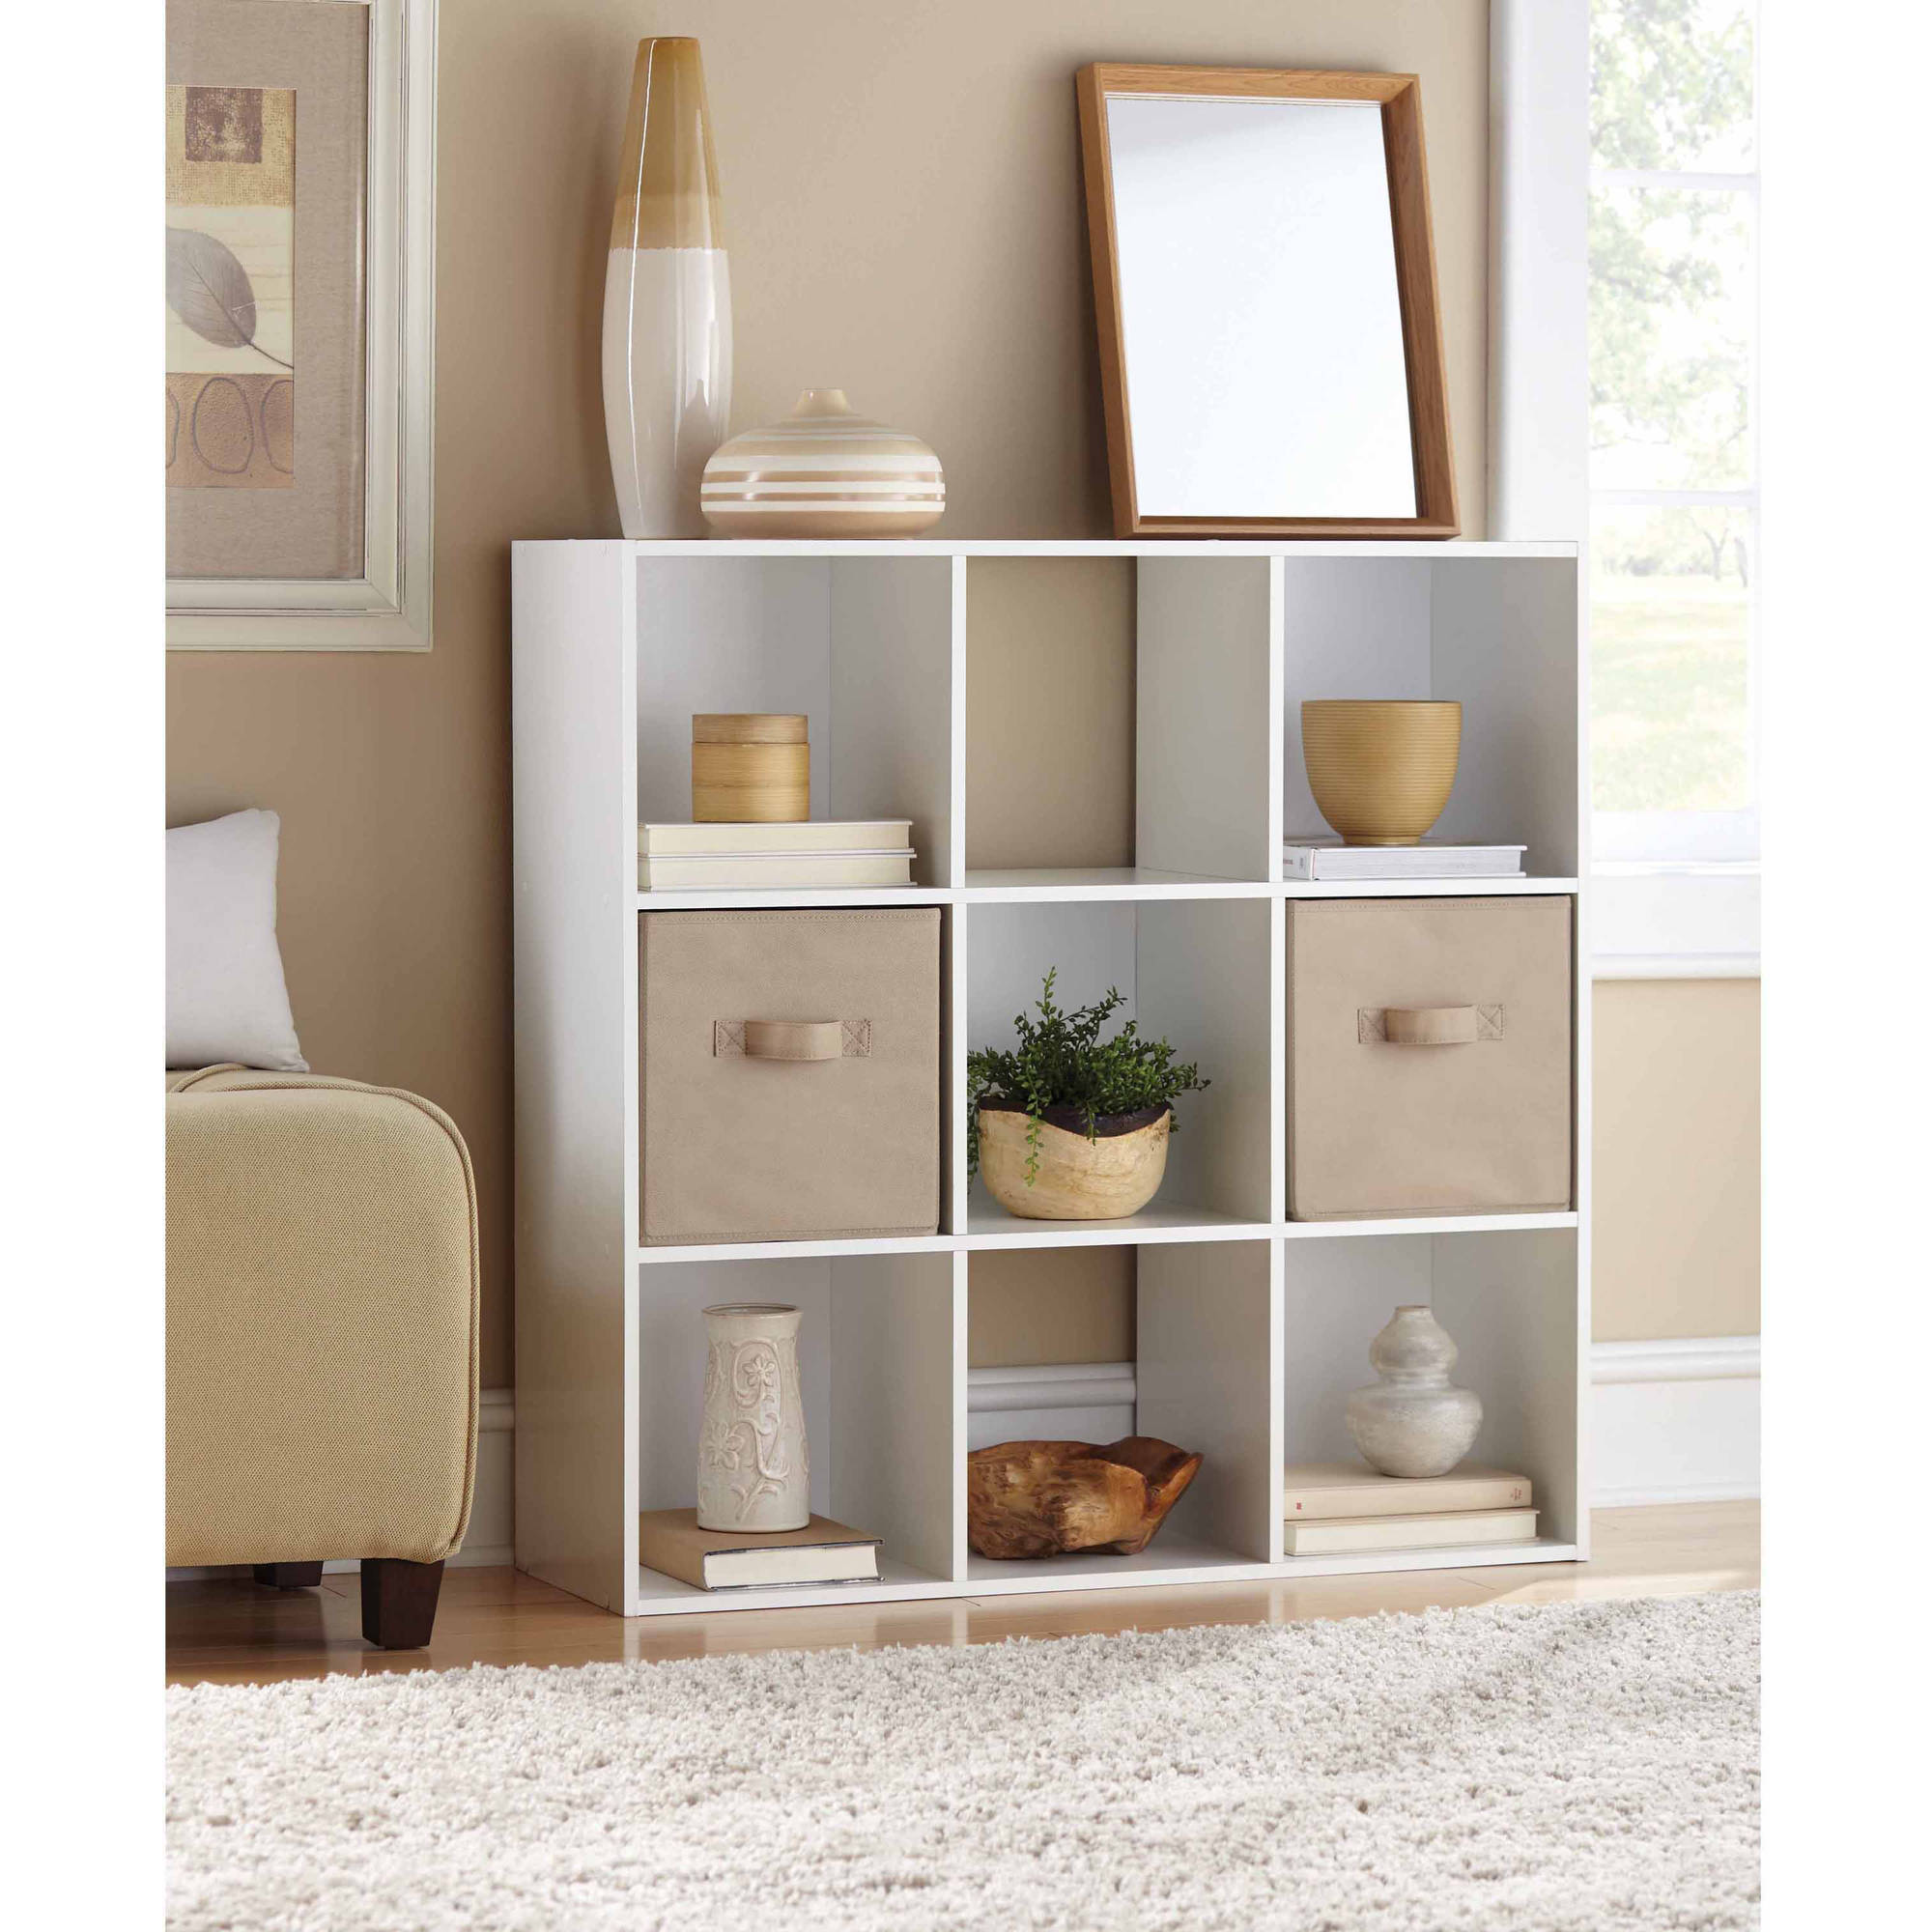 Mainstays 9 Cube Storage Organizer Multiple Colors